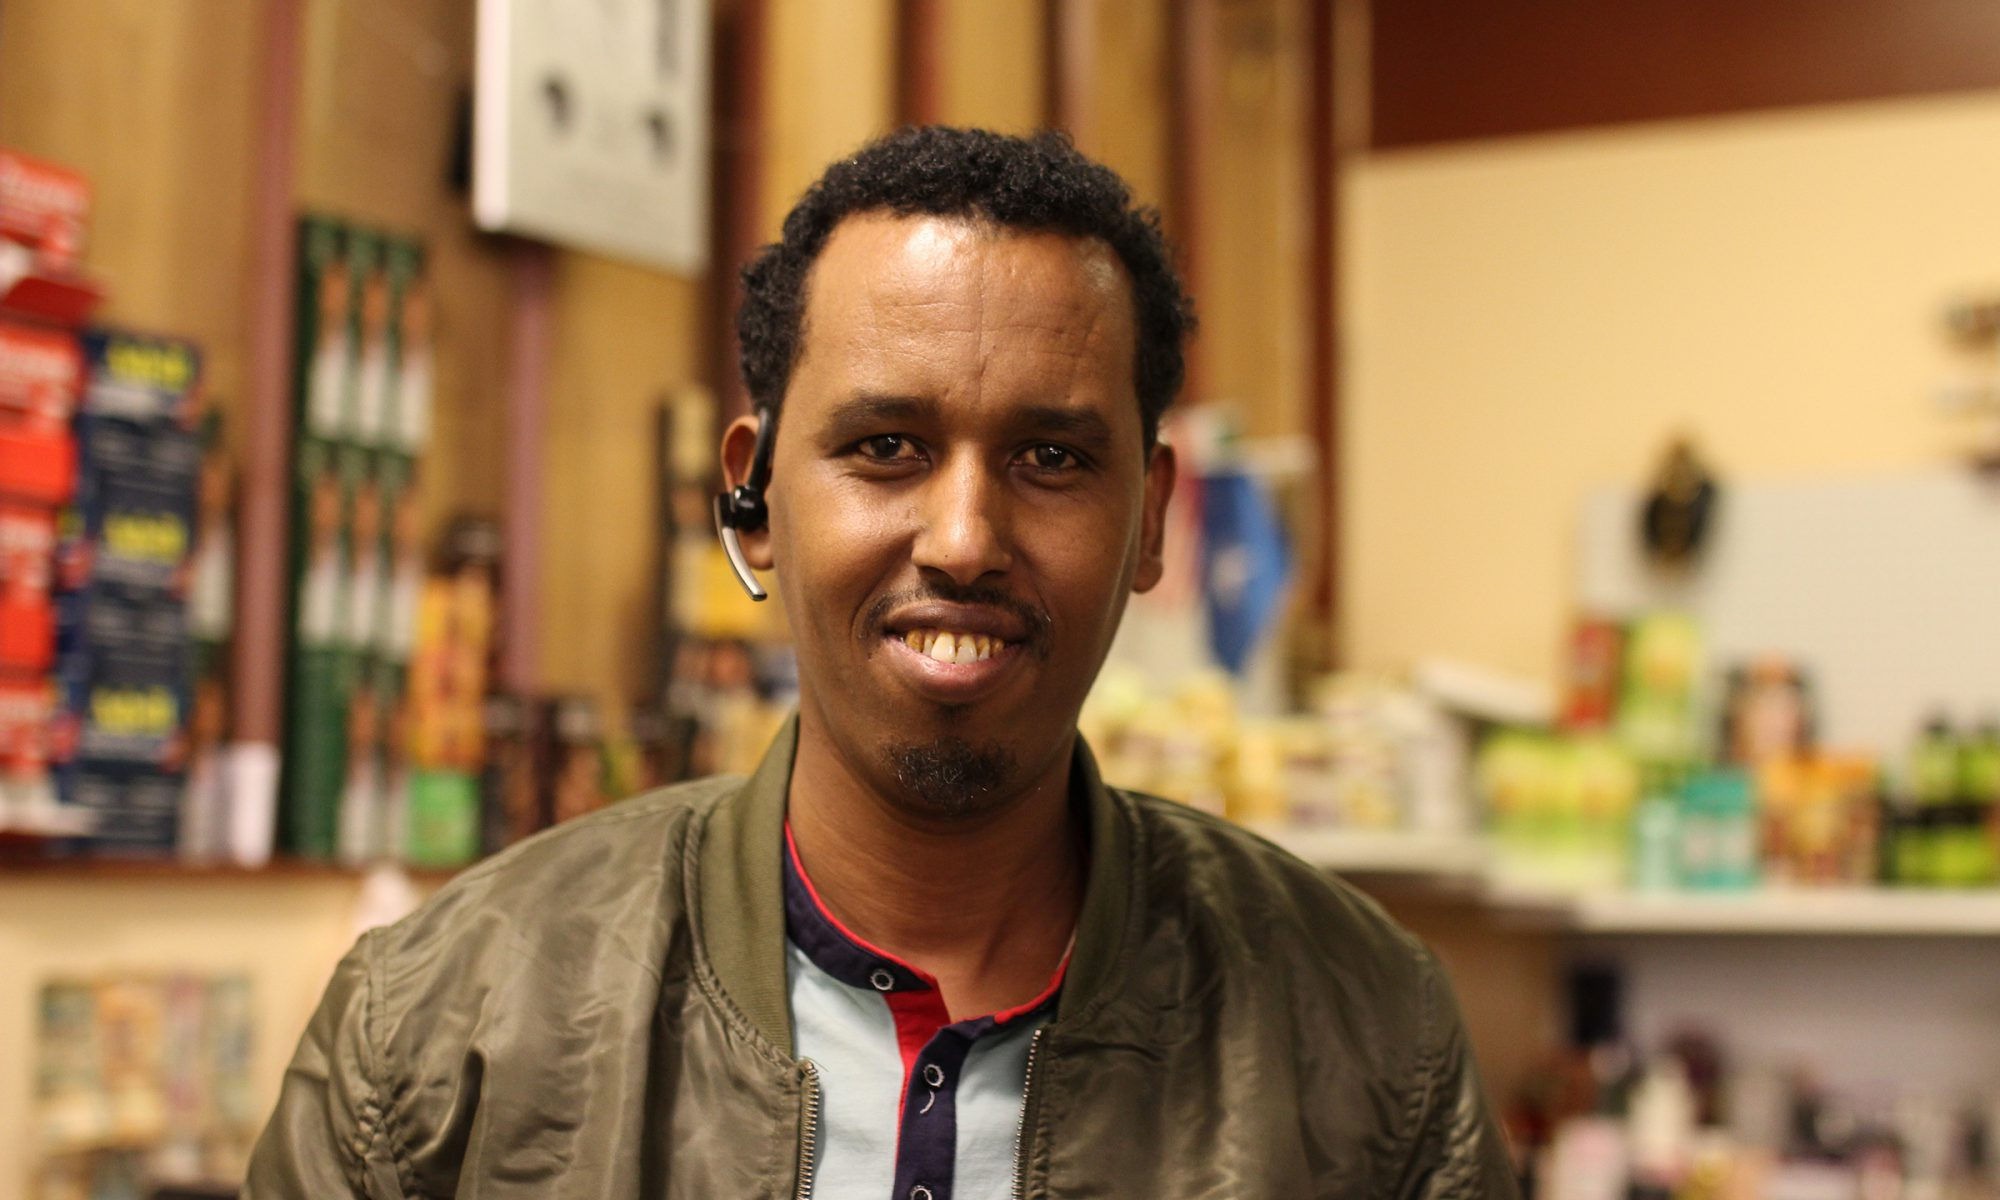 Five years ago, Abdiwahab Hade opened the Fort Morgan Mini-Halal Market. Since then, he has also opened a café and a small clothing boutique. Credit: Esther Honig/KUNC